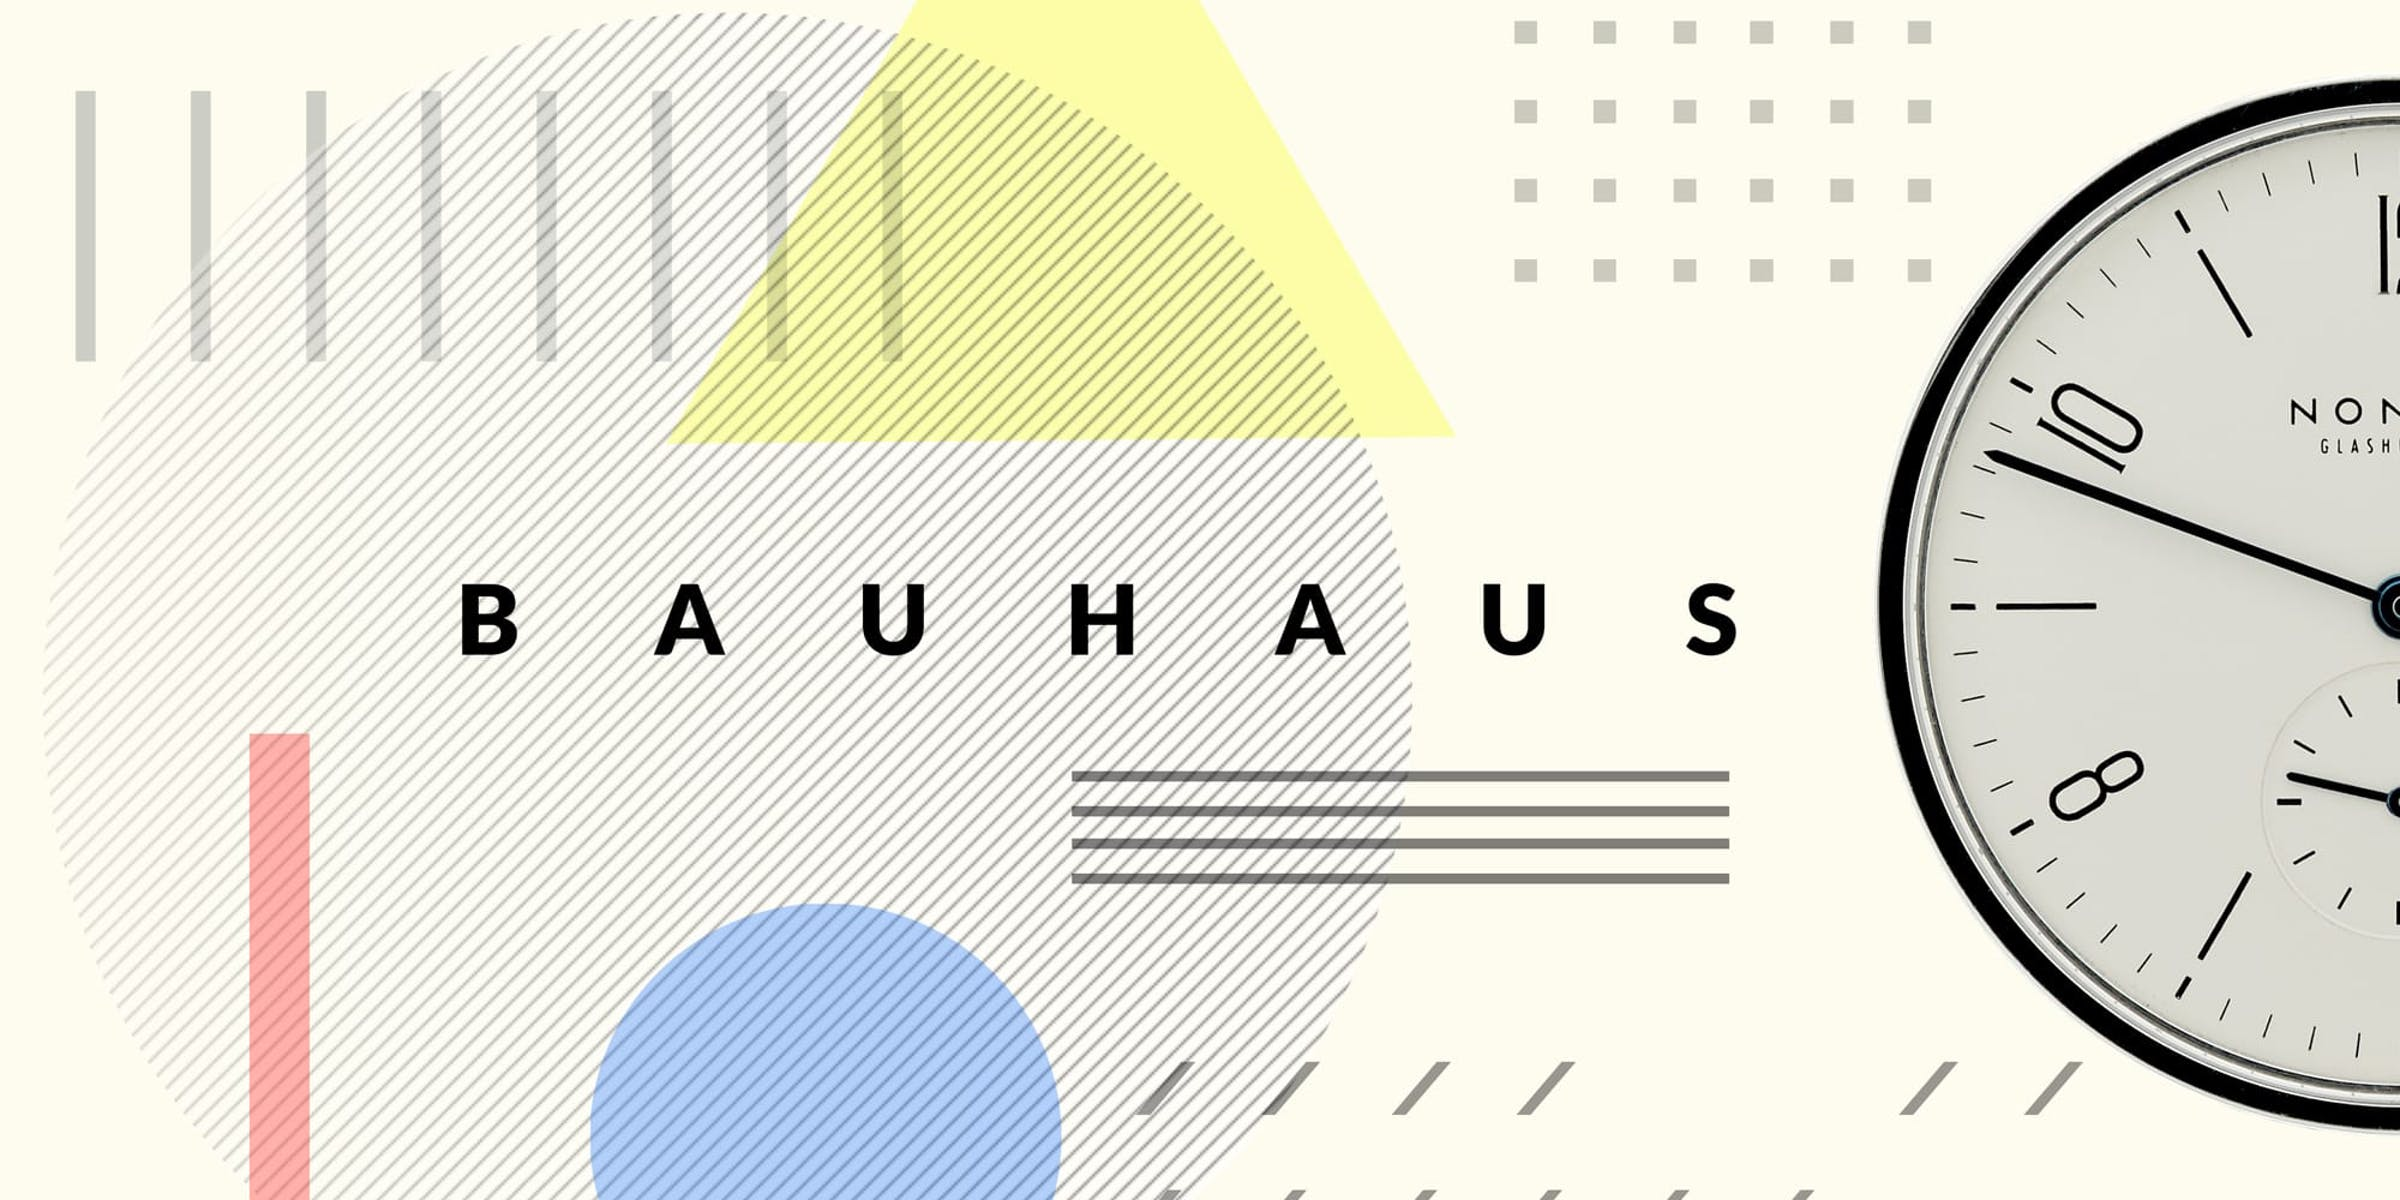 What are Bauhaus watches?